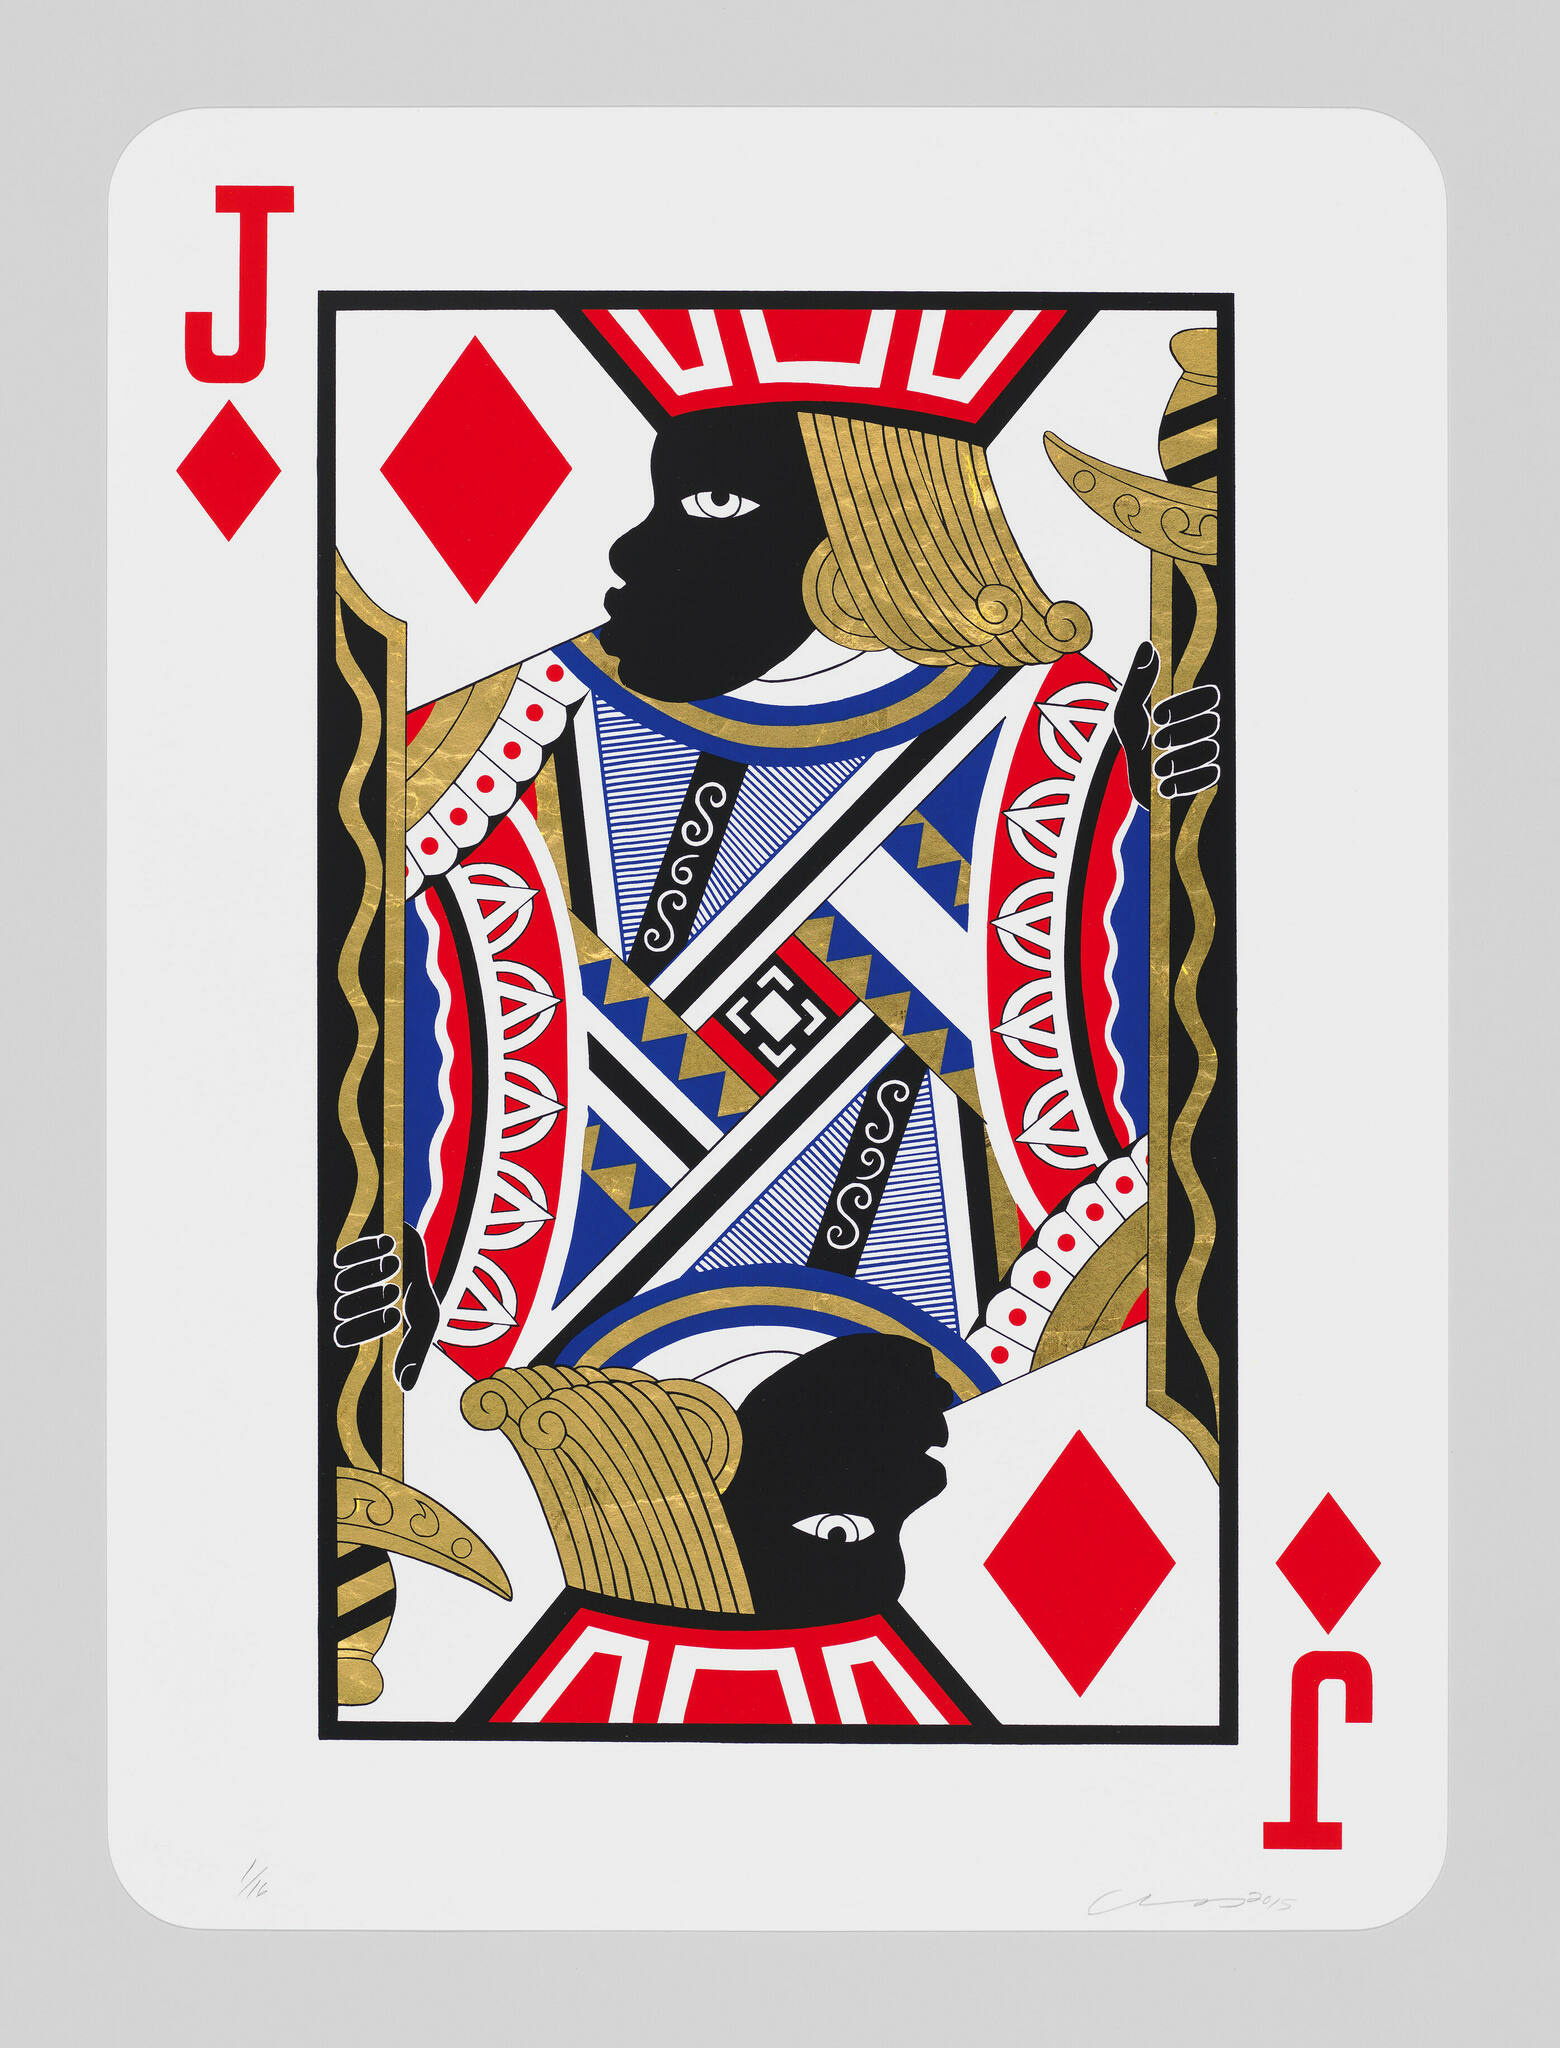 A jack of diamonds playing card depicts both jacks with black faces.